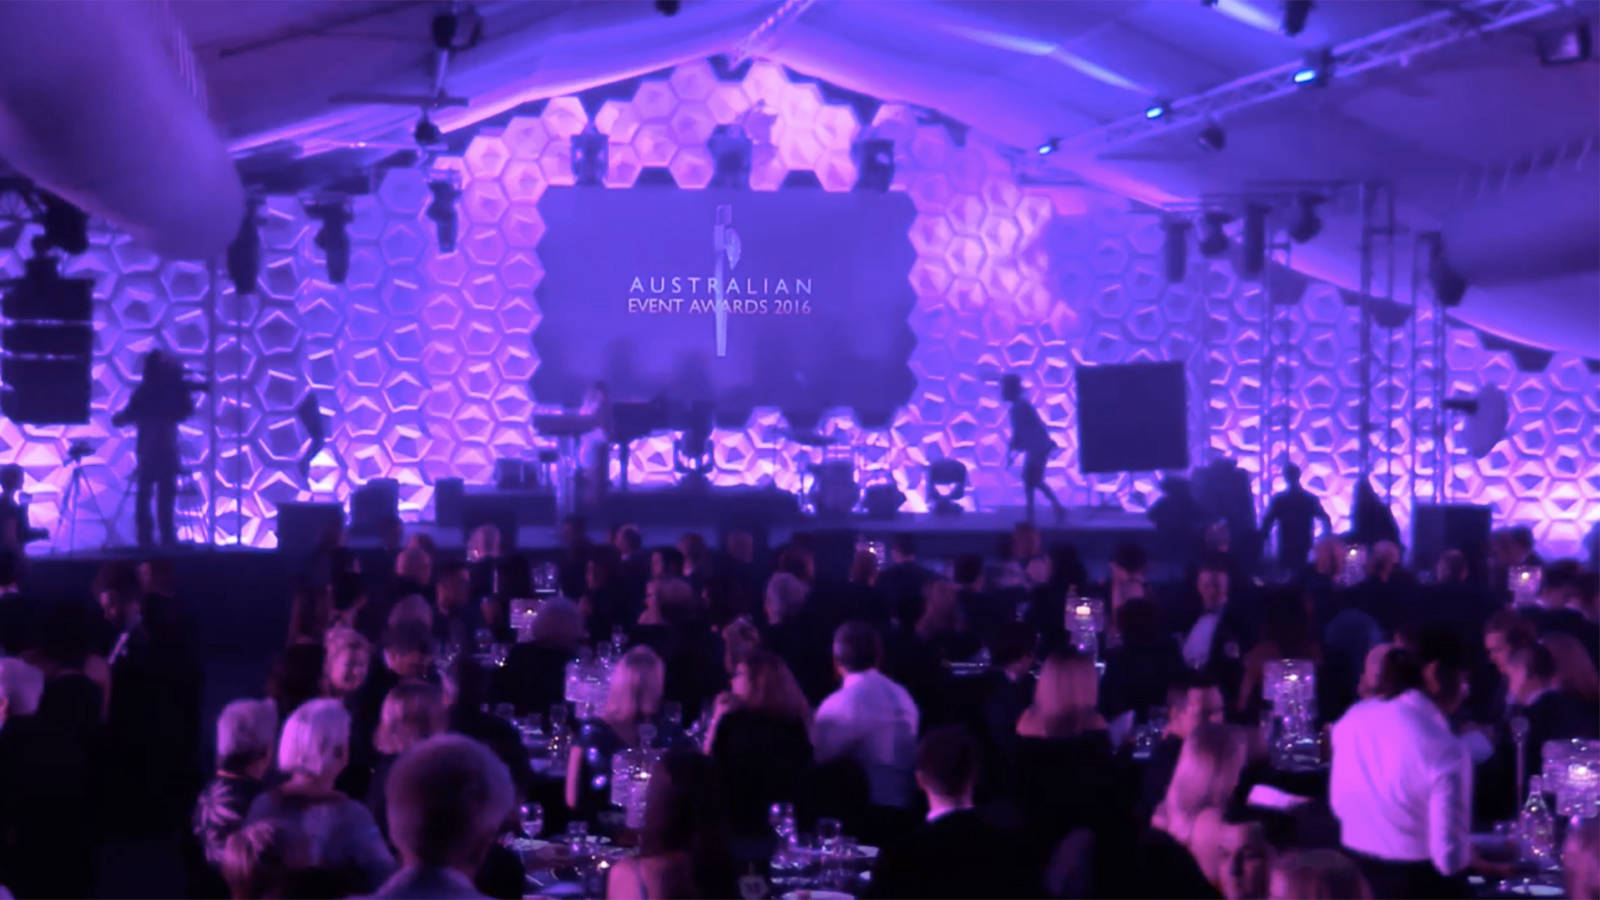 Australian Event Awards 2016 - Live Streaming